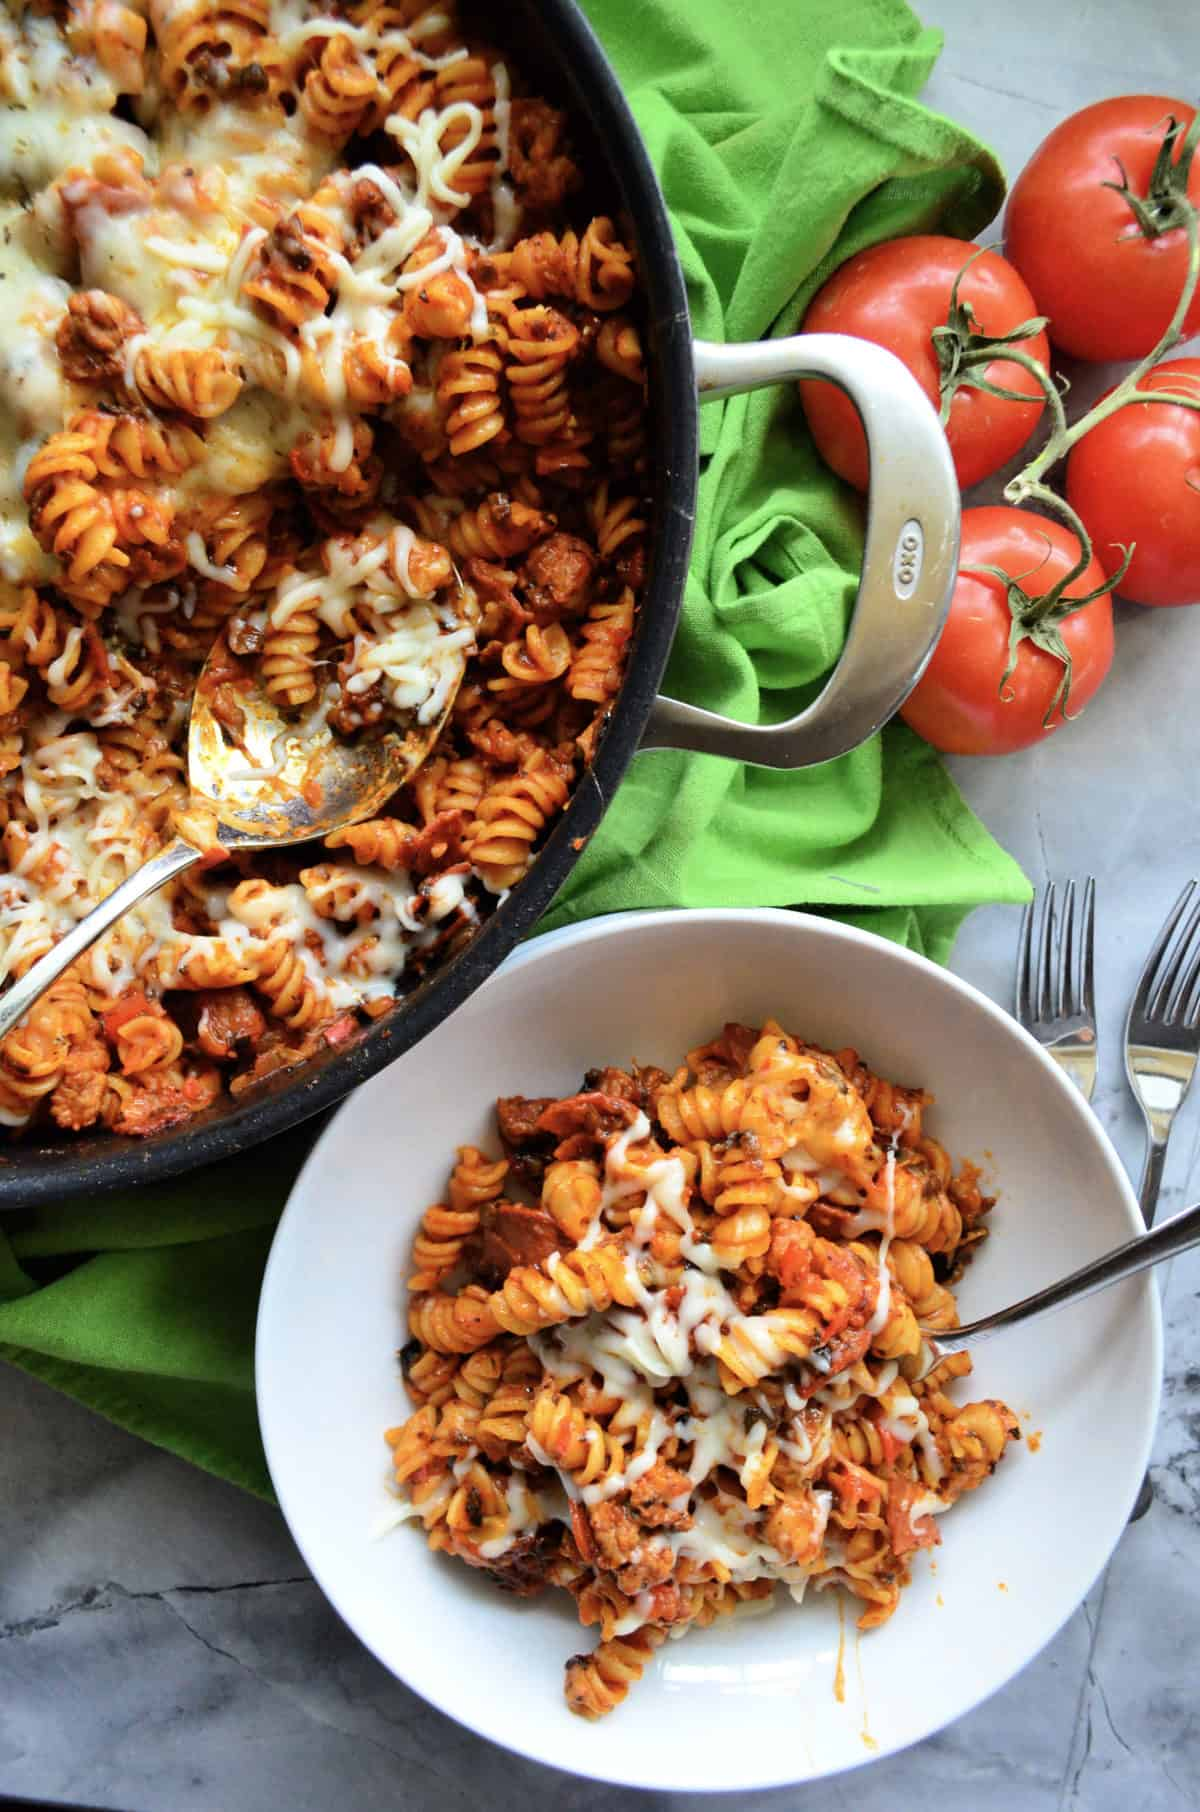 skillet and plate both with rotini in red sauce topped with herbs and melted white cheese.